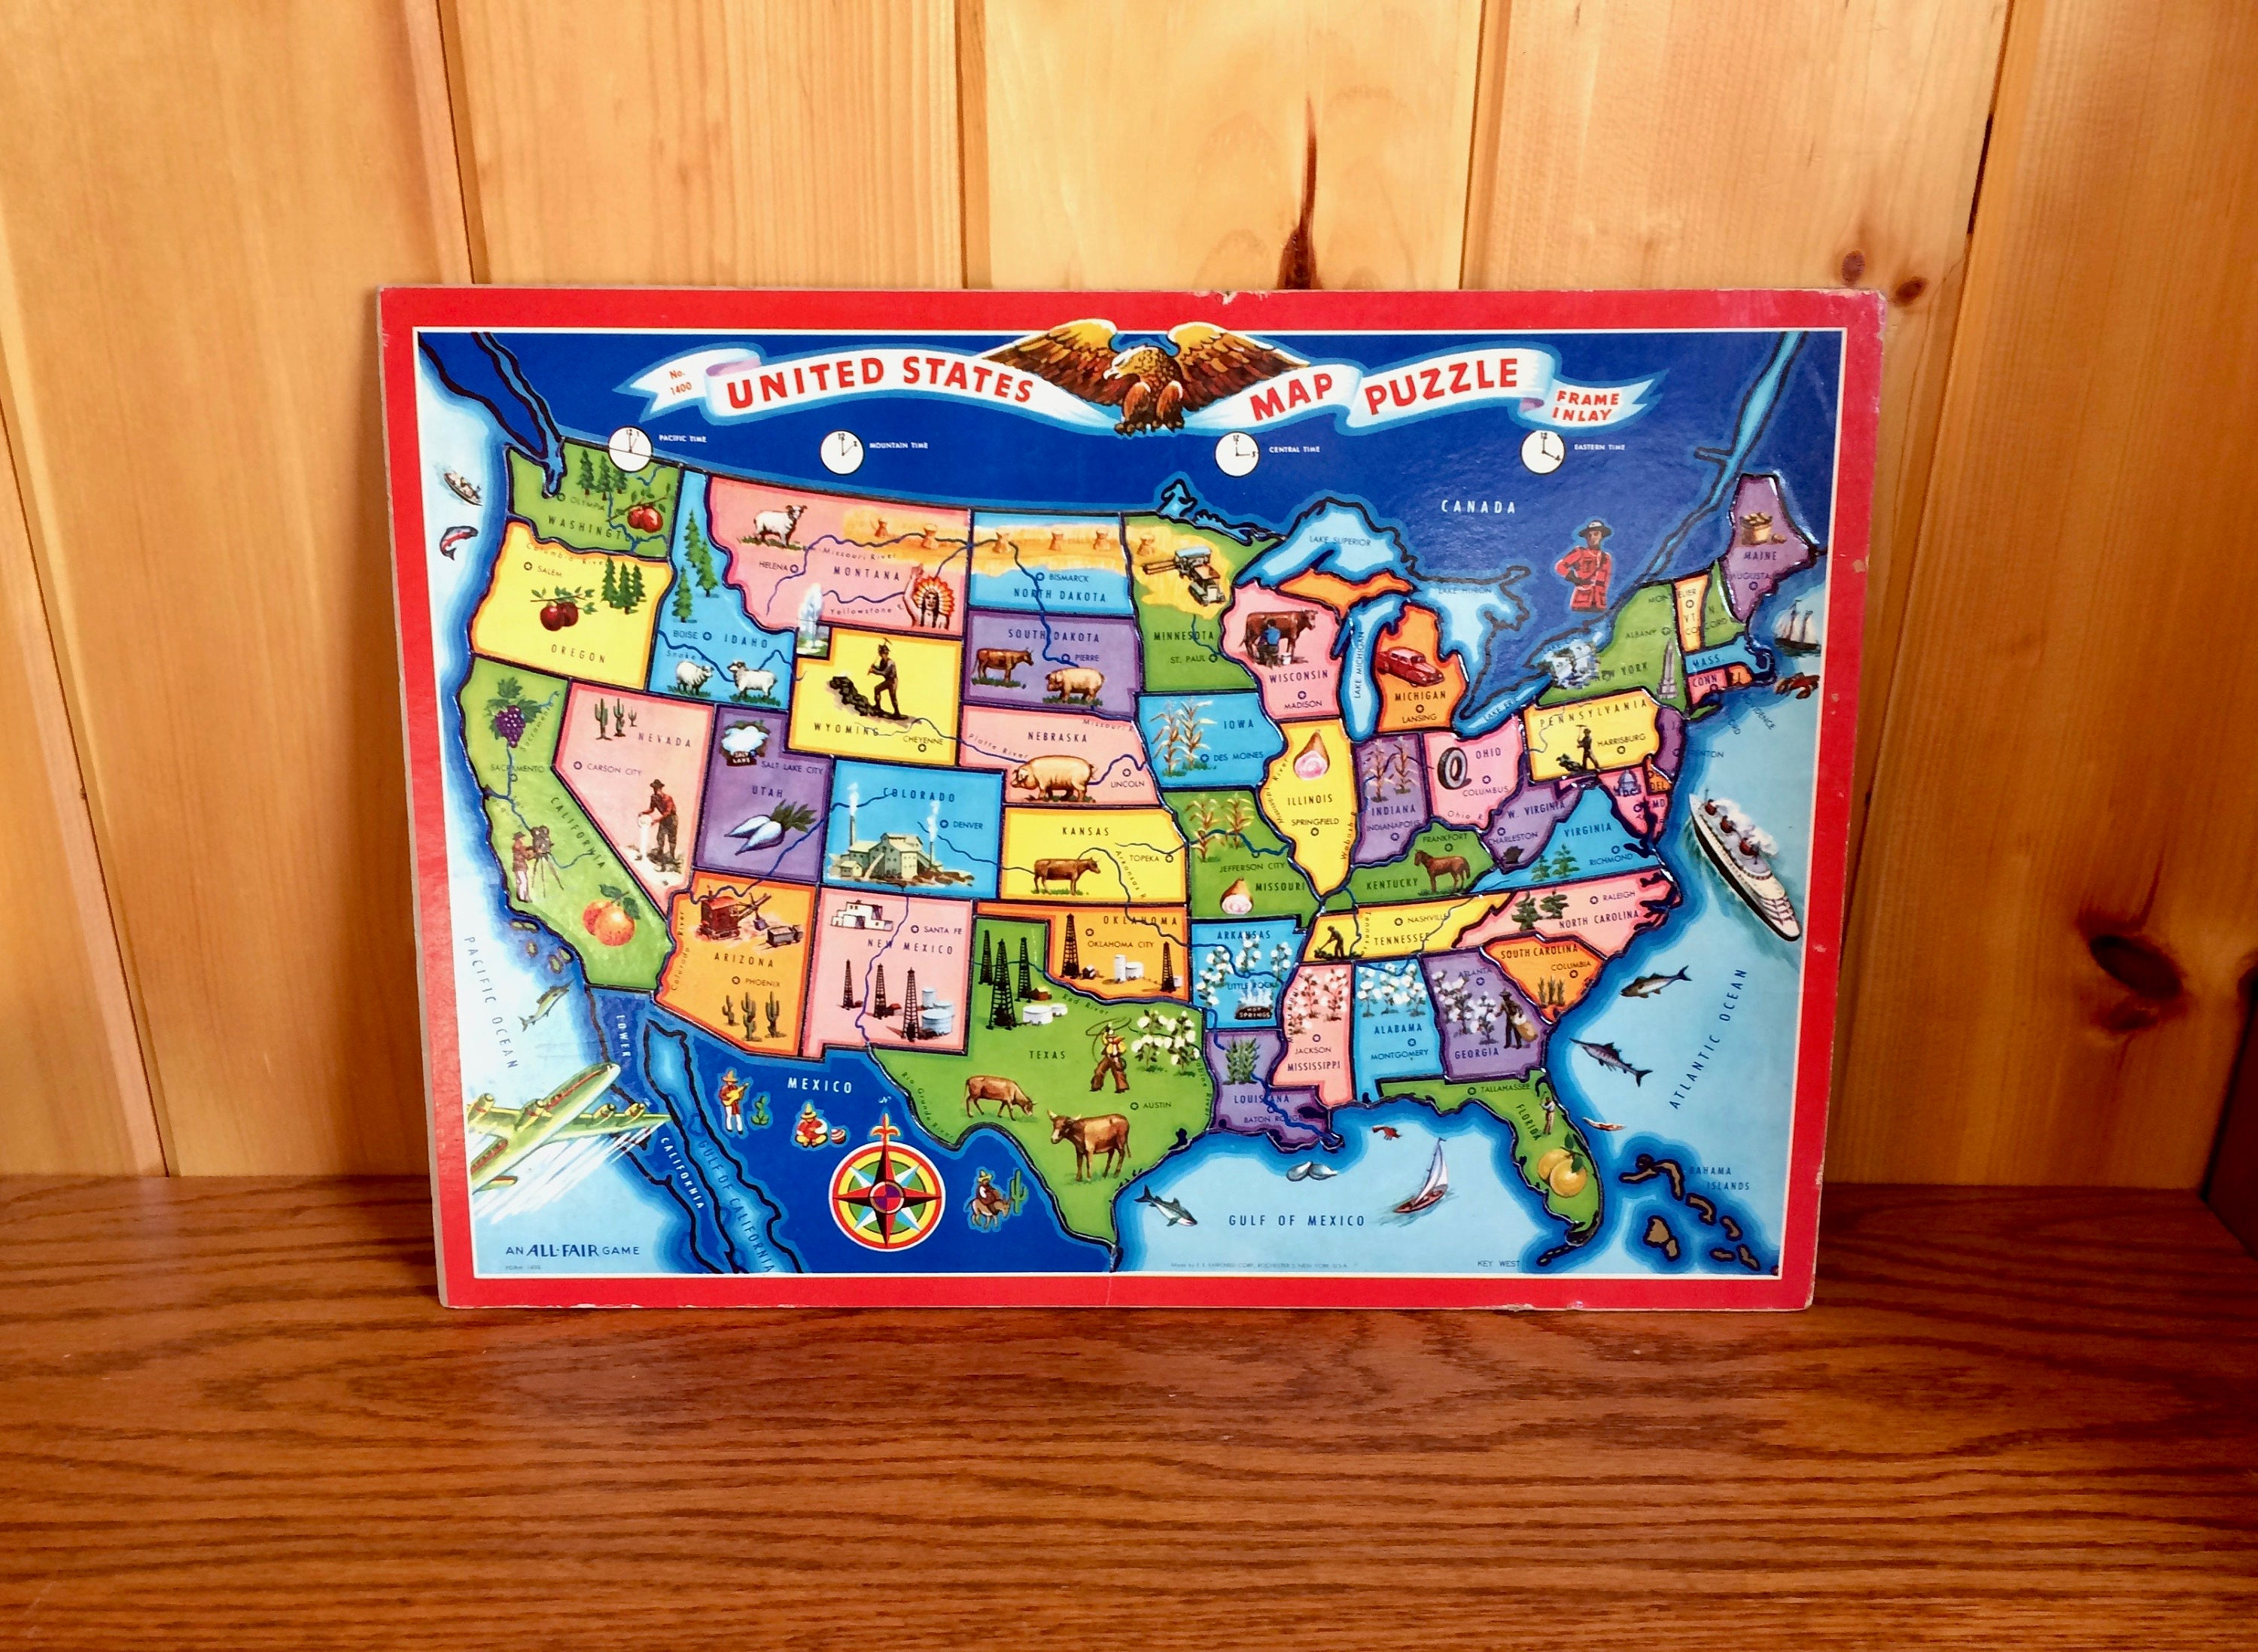 United States Map Puzzle EE Fairchild Corp All Fair Toys